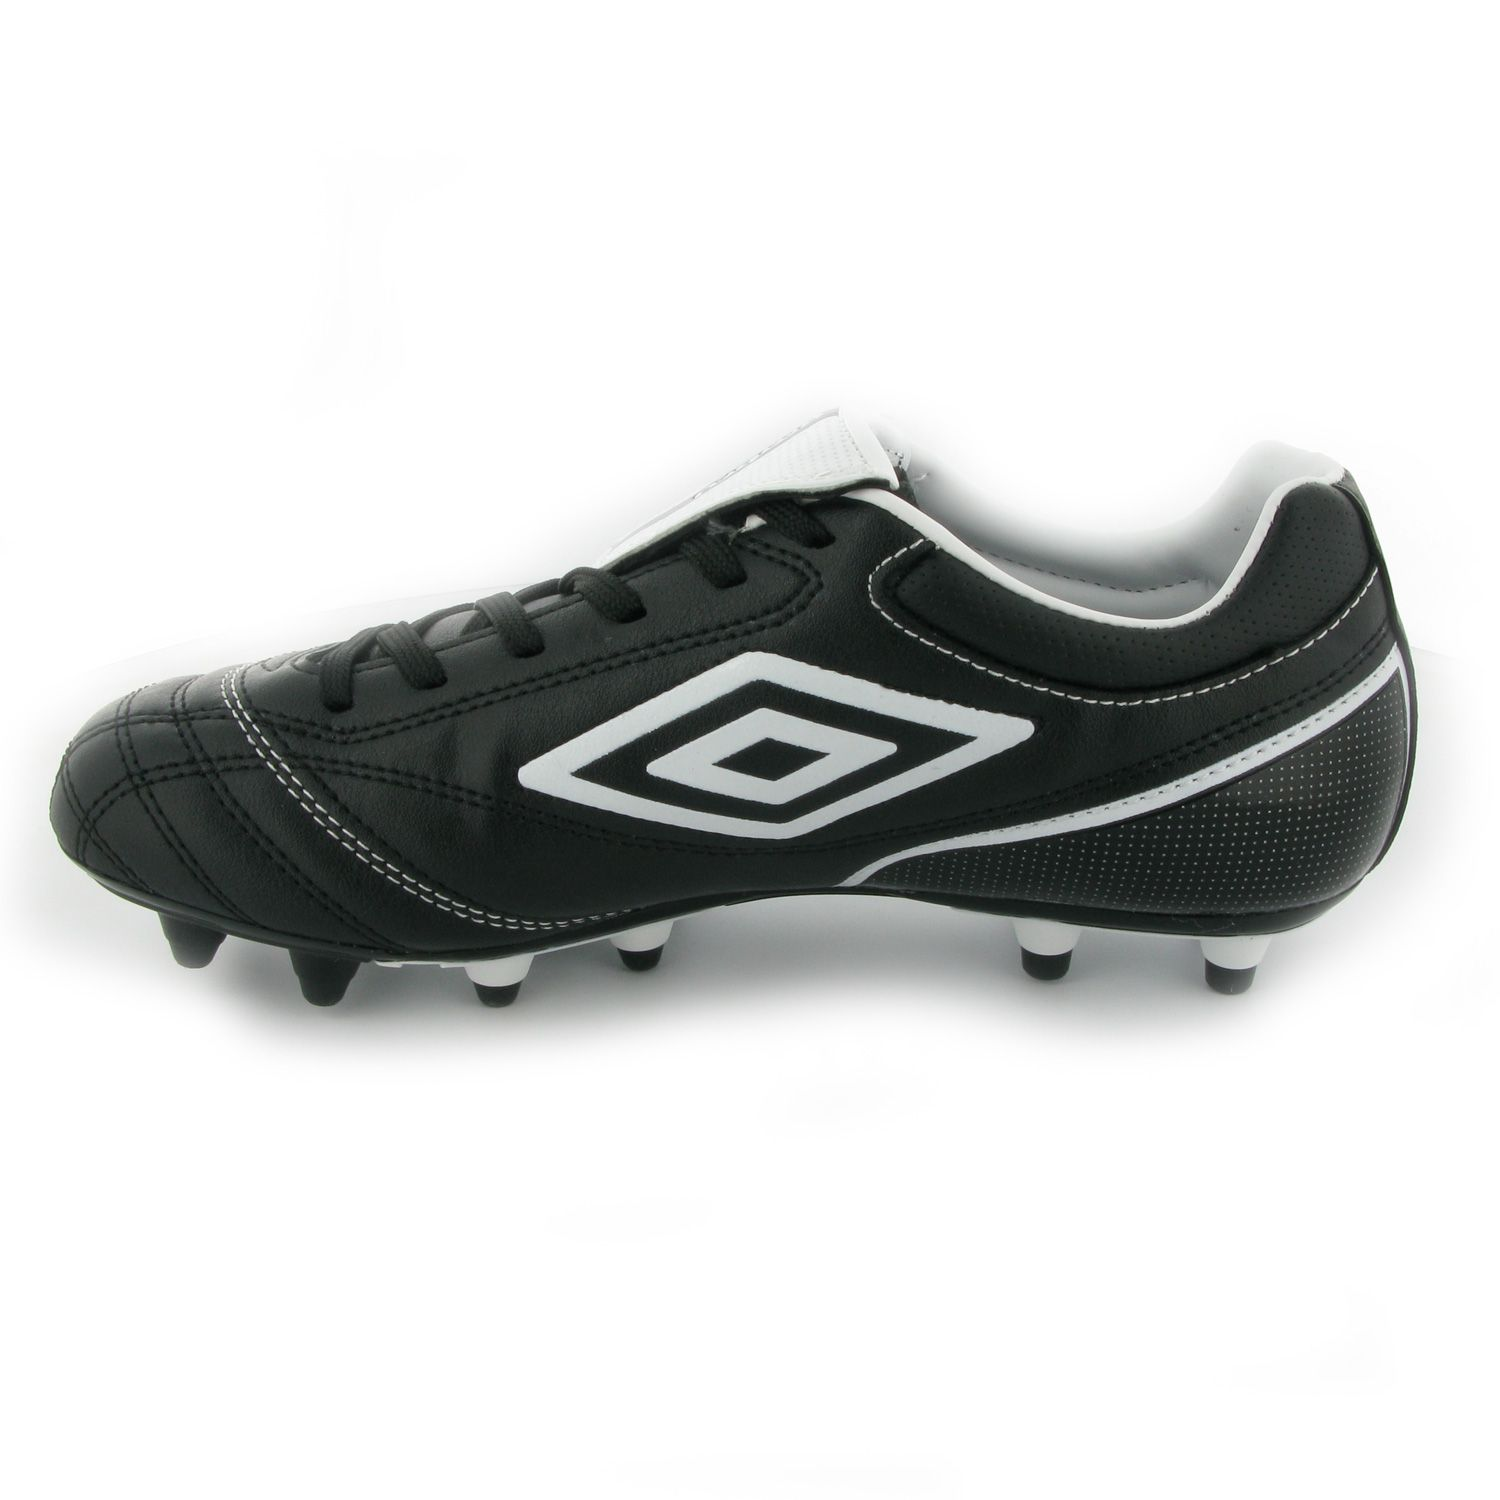 Umbro-Classico-HG-Mens-Football-Boots